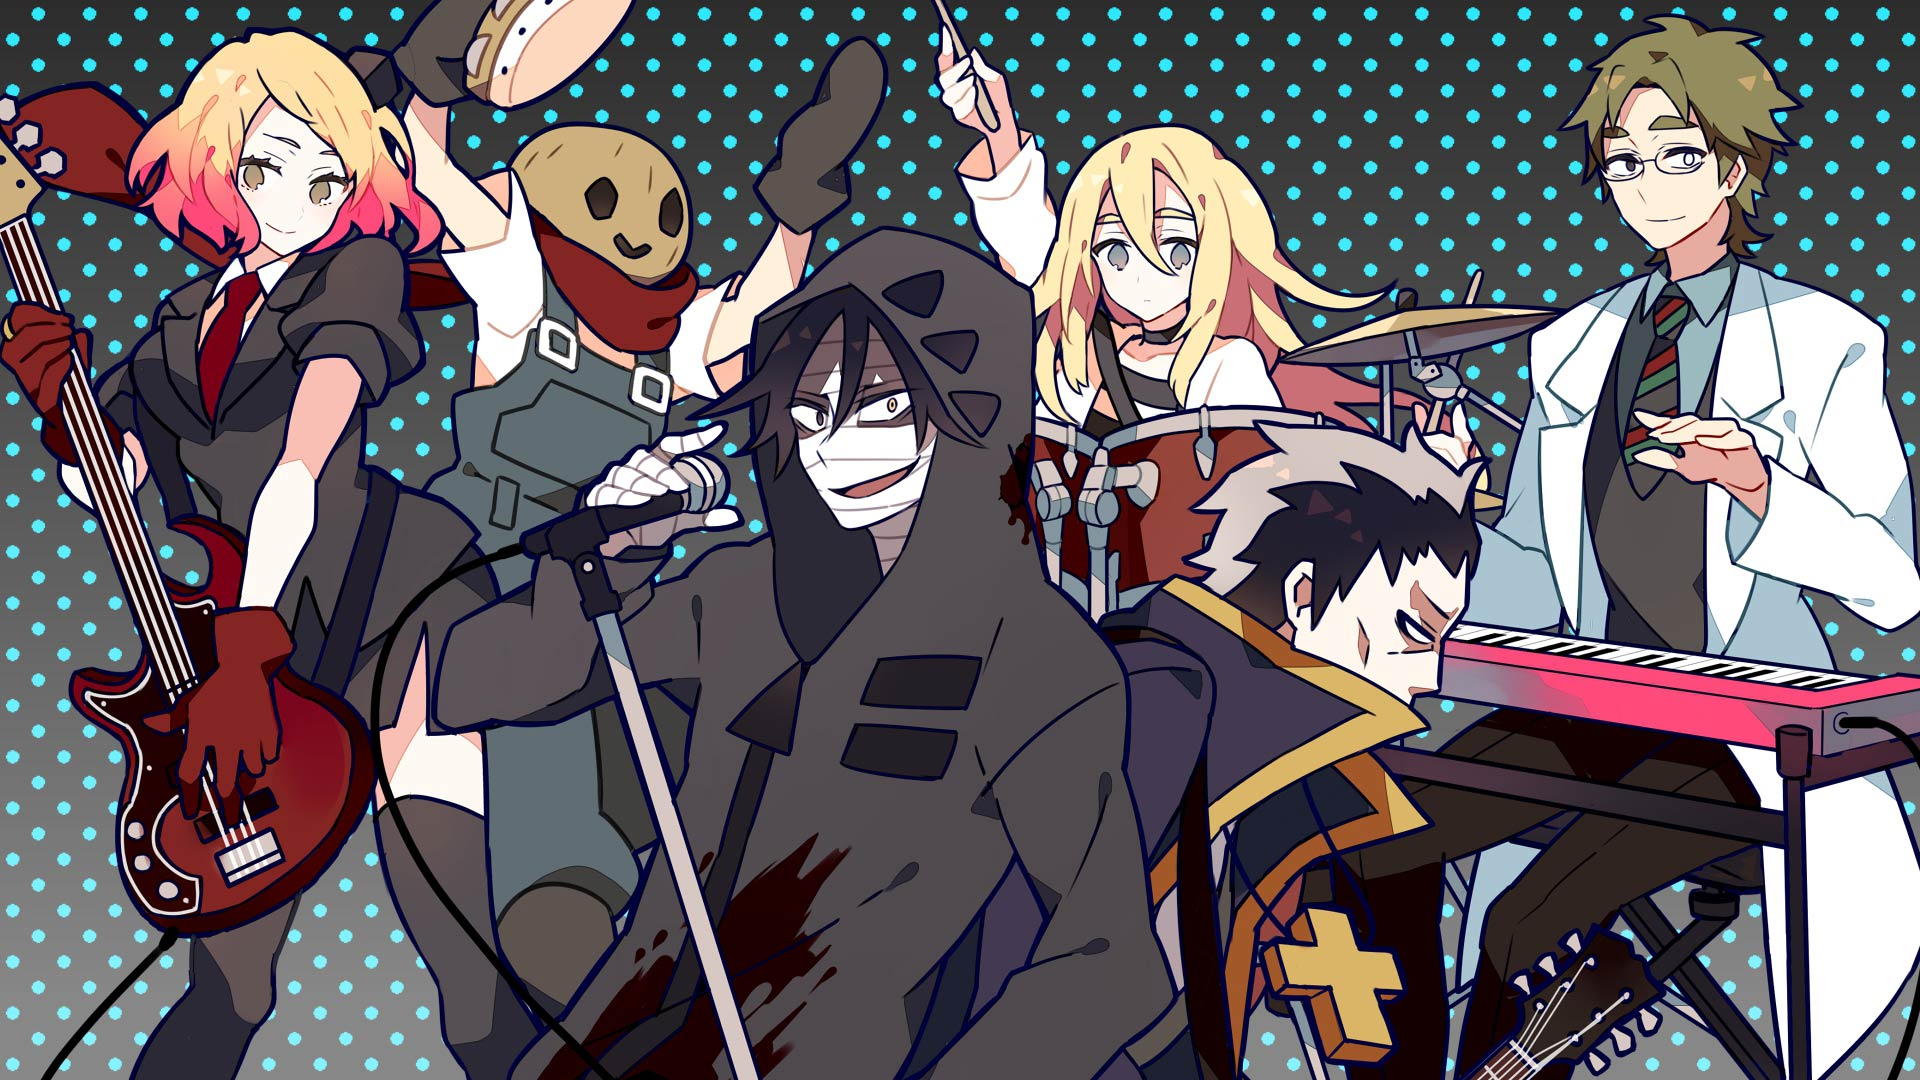 Angels of death or satsuriku no tenshi which roughly translates to angels of slaughter is an anime based on a horror game by hoshikuzu krnkrn